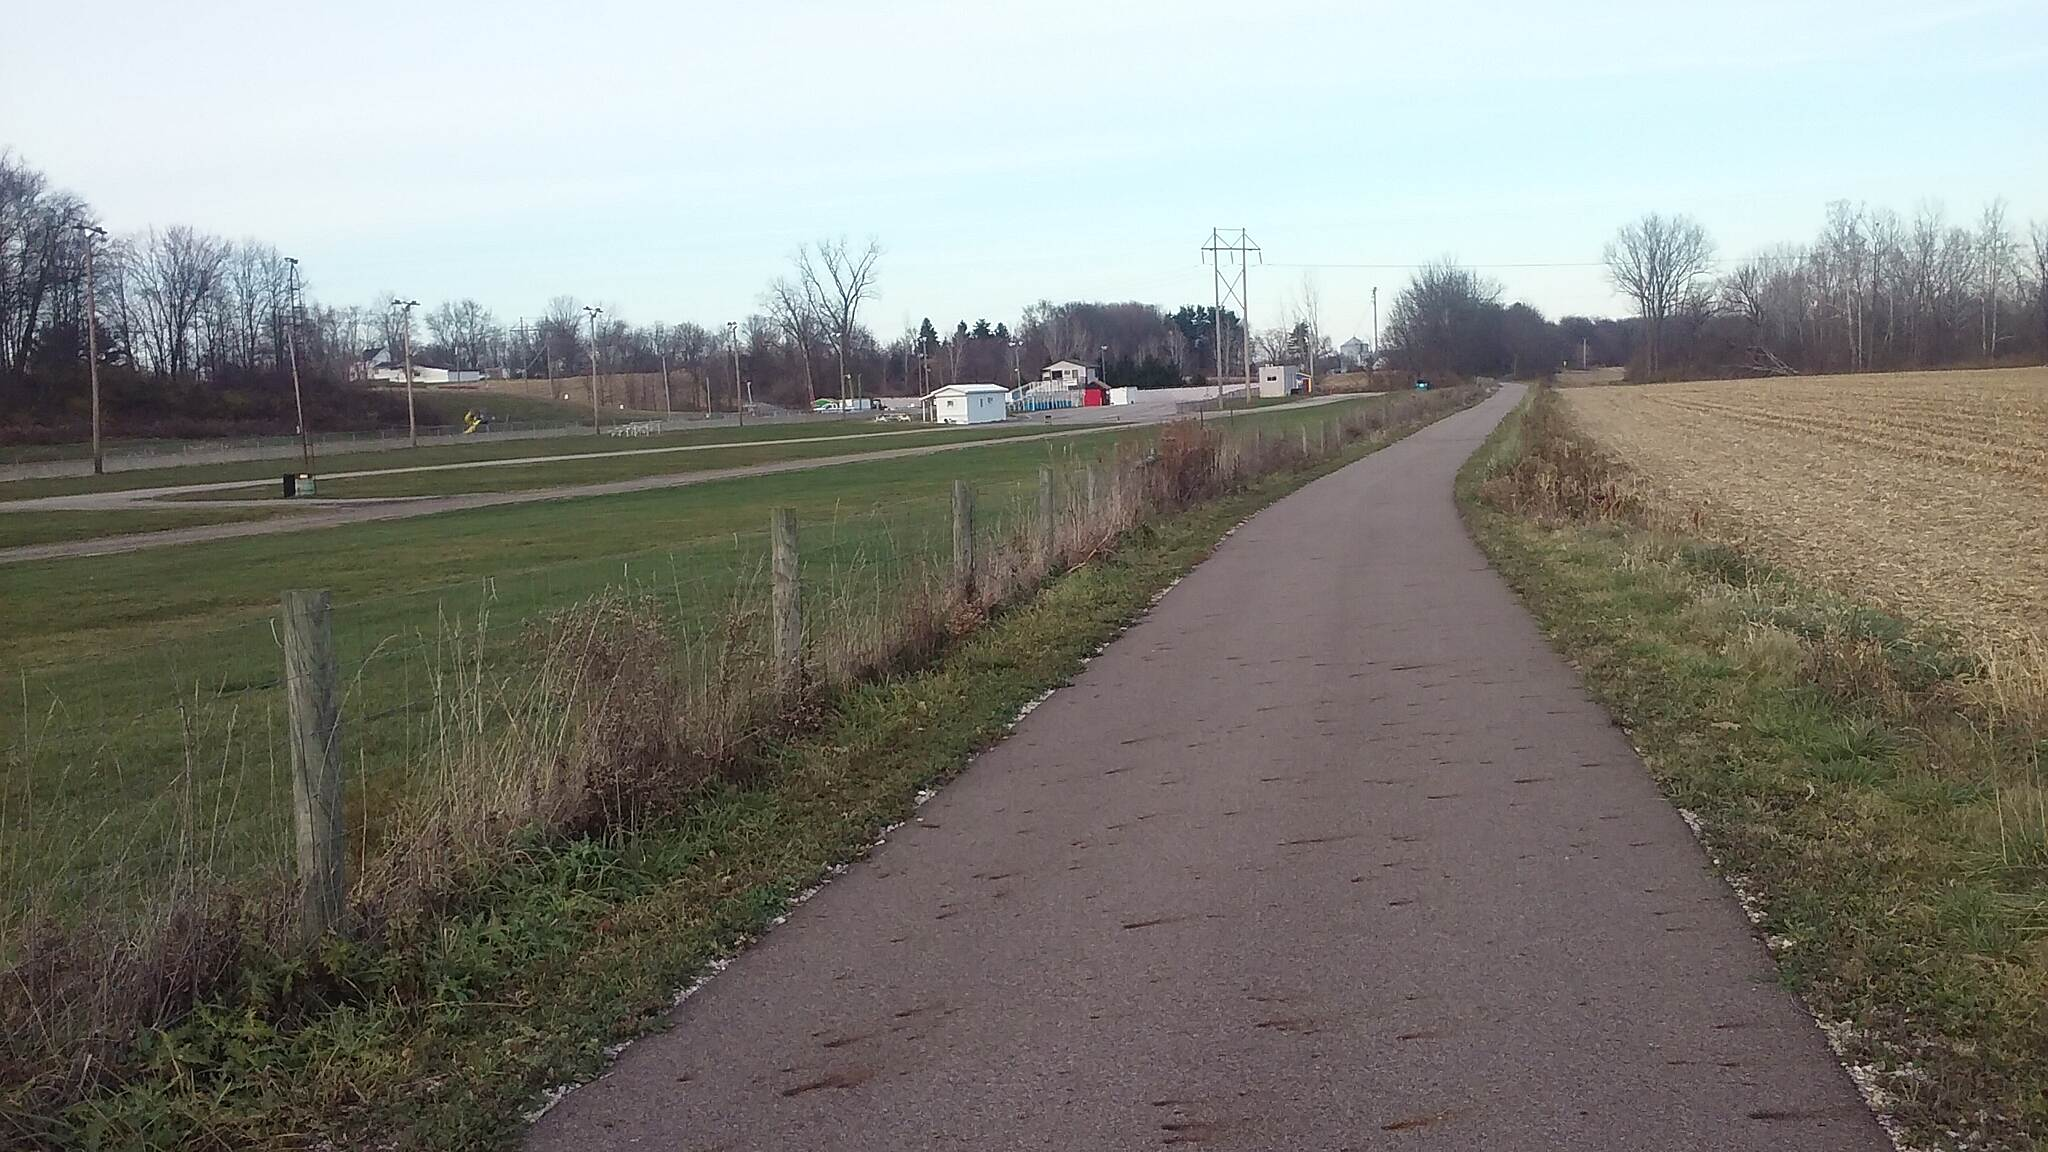 Heart of Ohio Trail Northbound November 2015 Pacemakers Dragway Park along Heart of Ohio Trail in South part of Mt. Vernon, OH